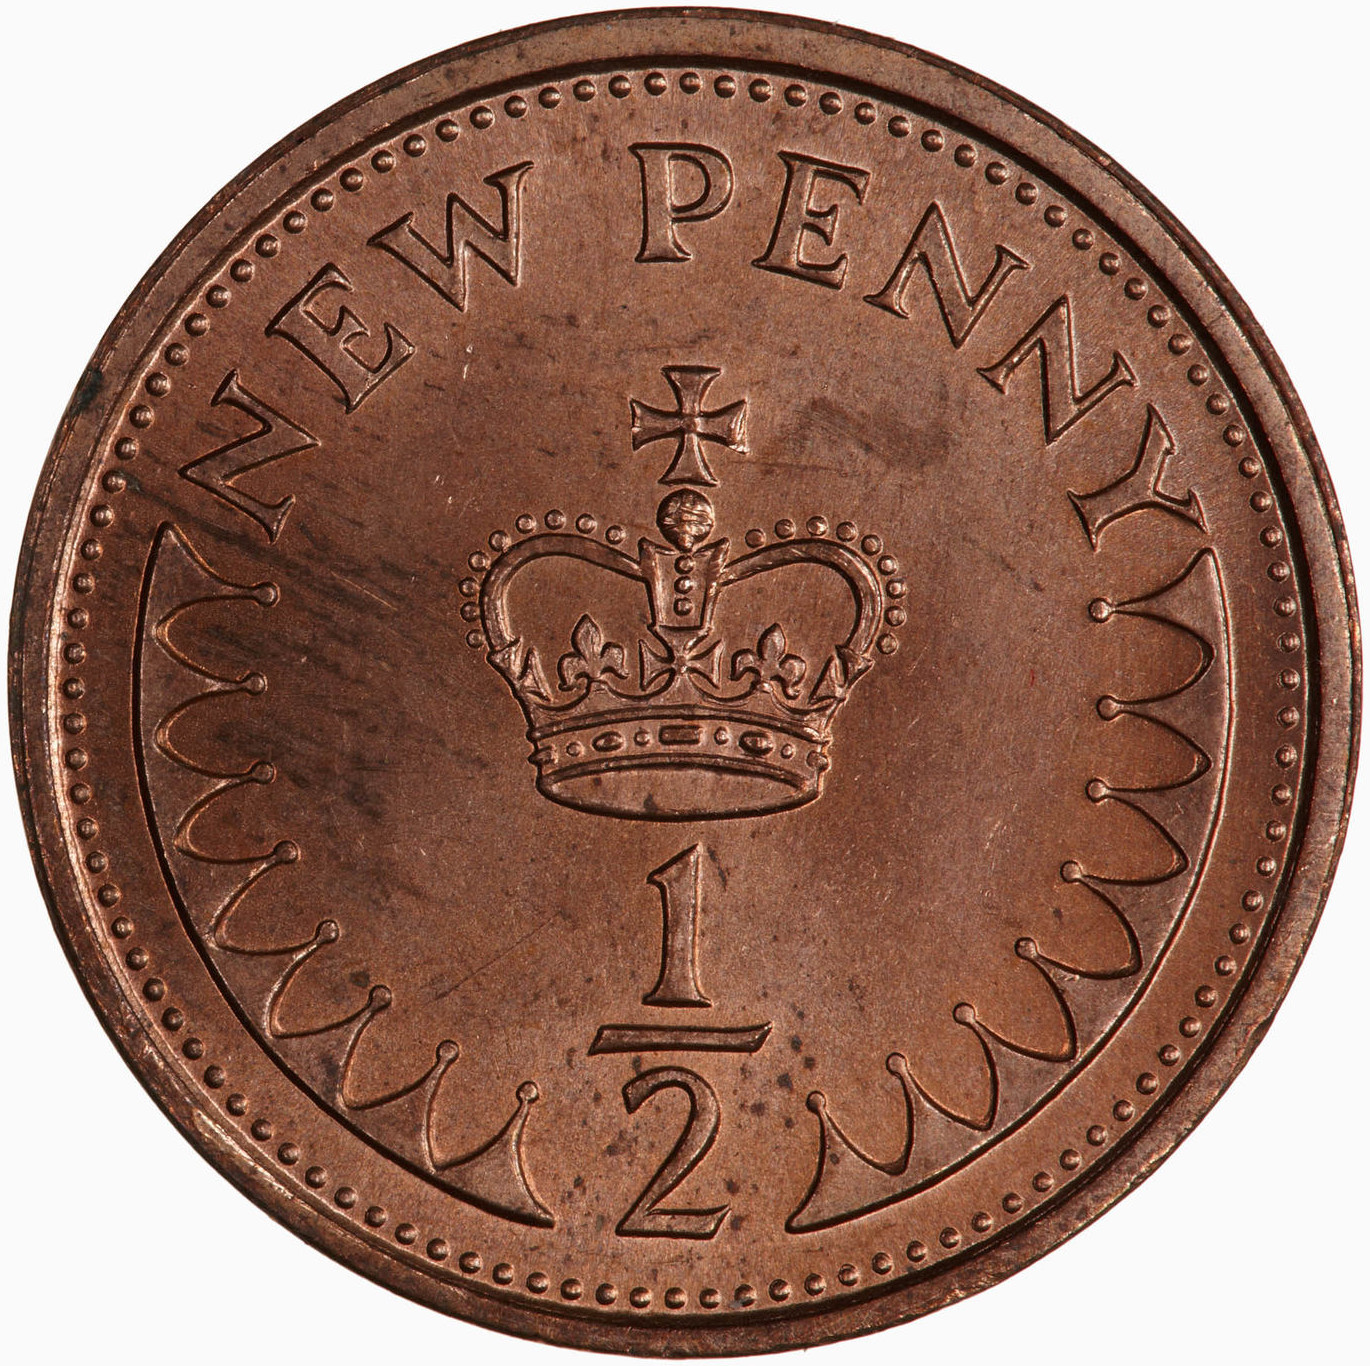 Half Penny 1975: Photo Coin - 1/2 New Penny, Elizabeth II, Great Britain, 1975